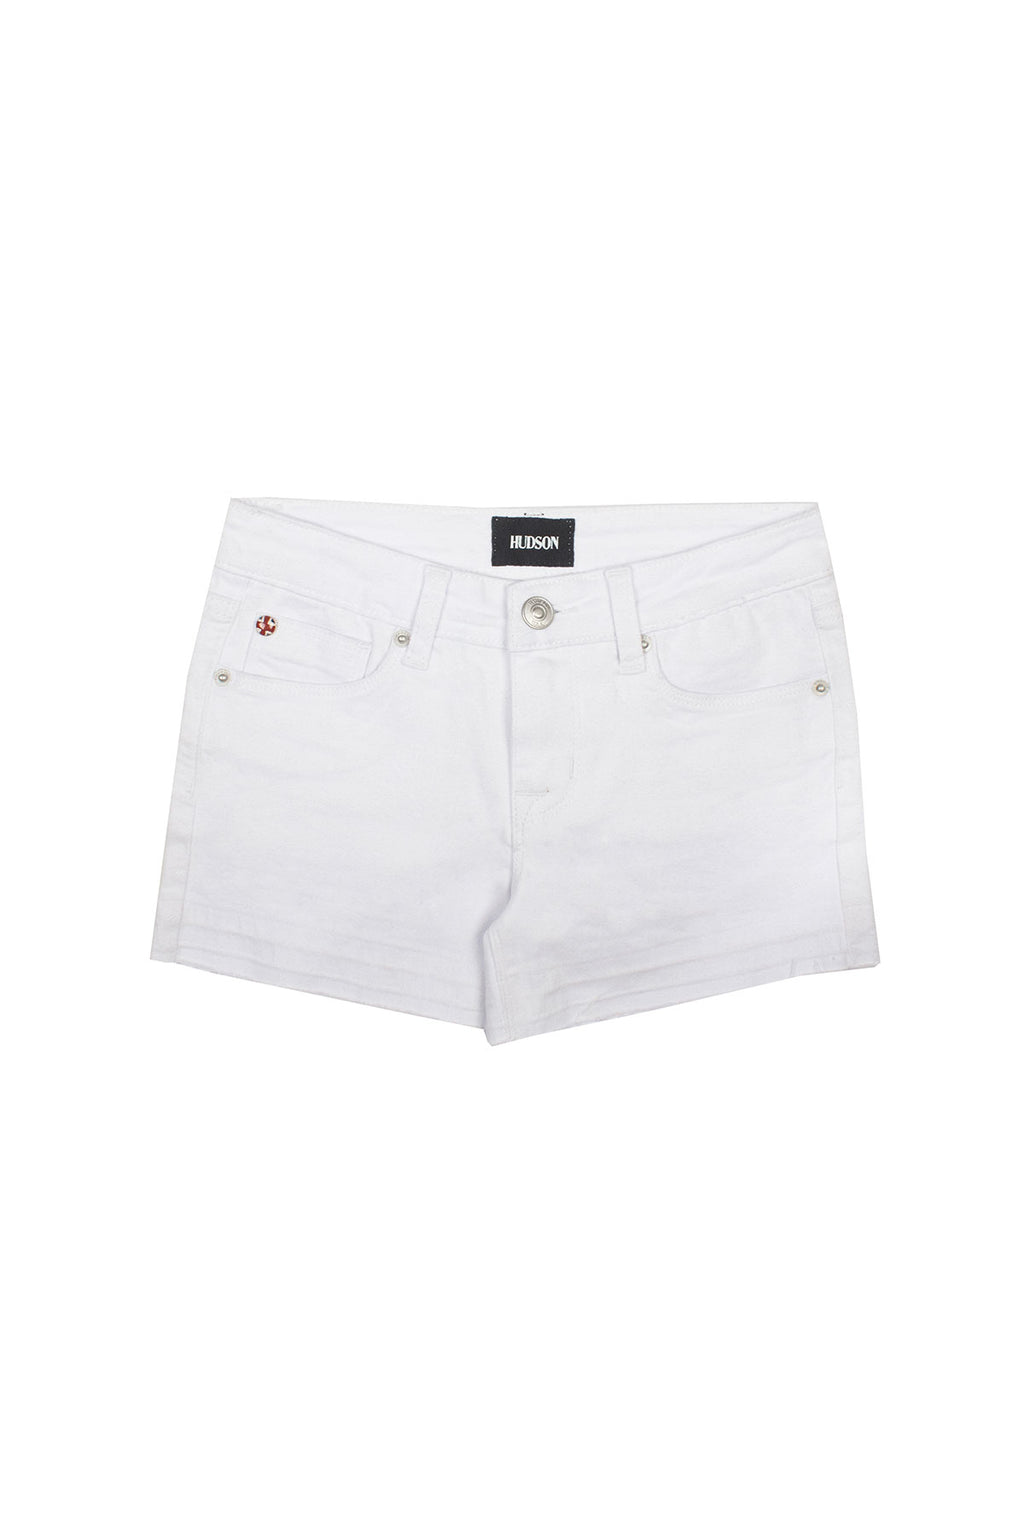 GIRLS AVA SHORT, SIZES 2T-6X - WHITE - Image 1